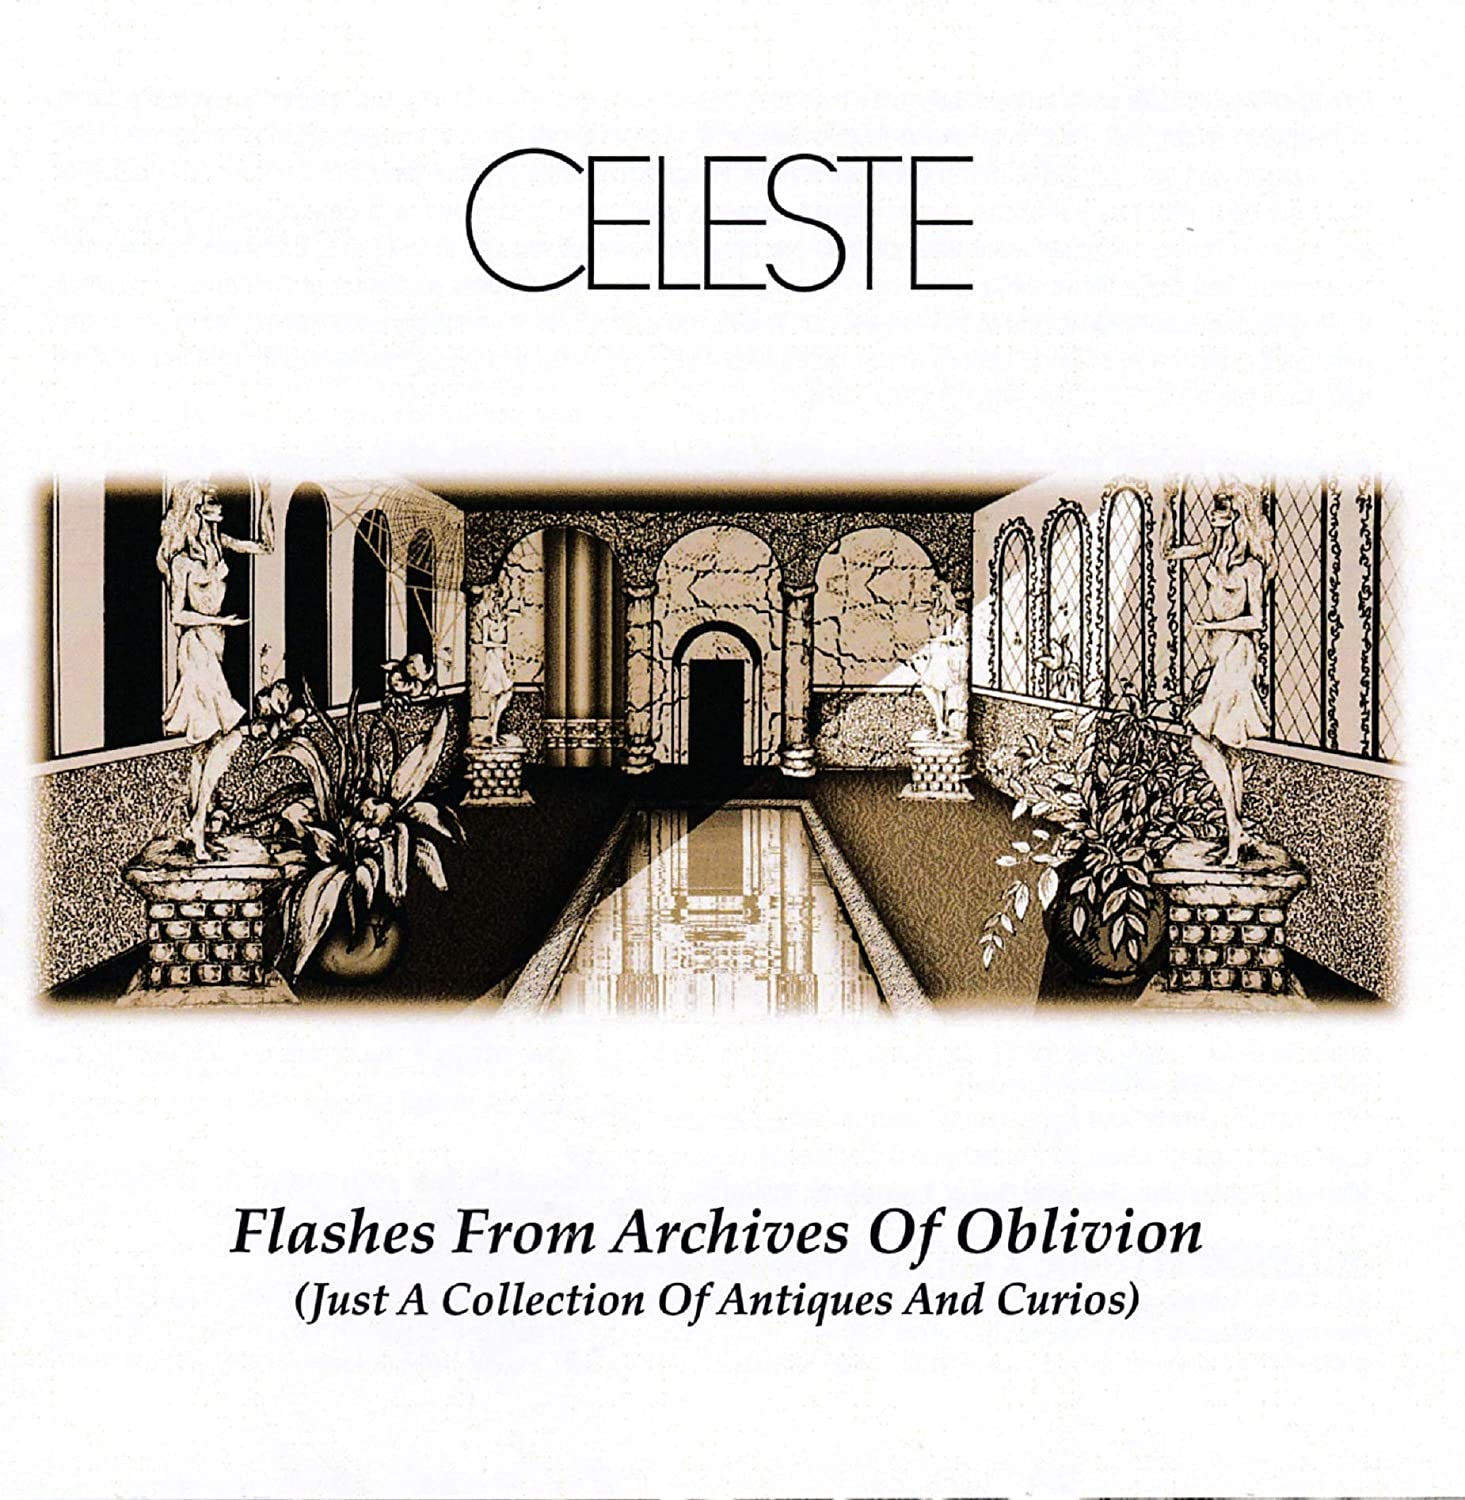 Celeste — Flashes from Archives of Oblivion